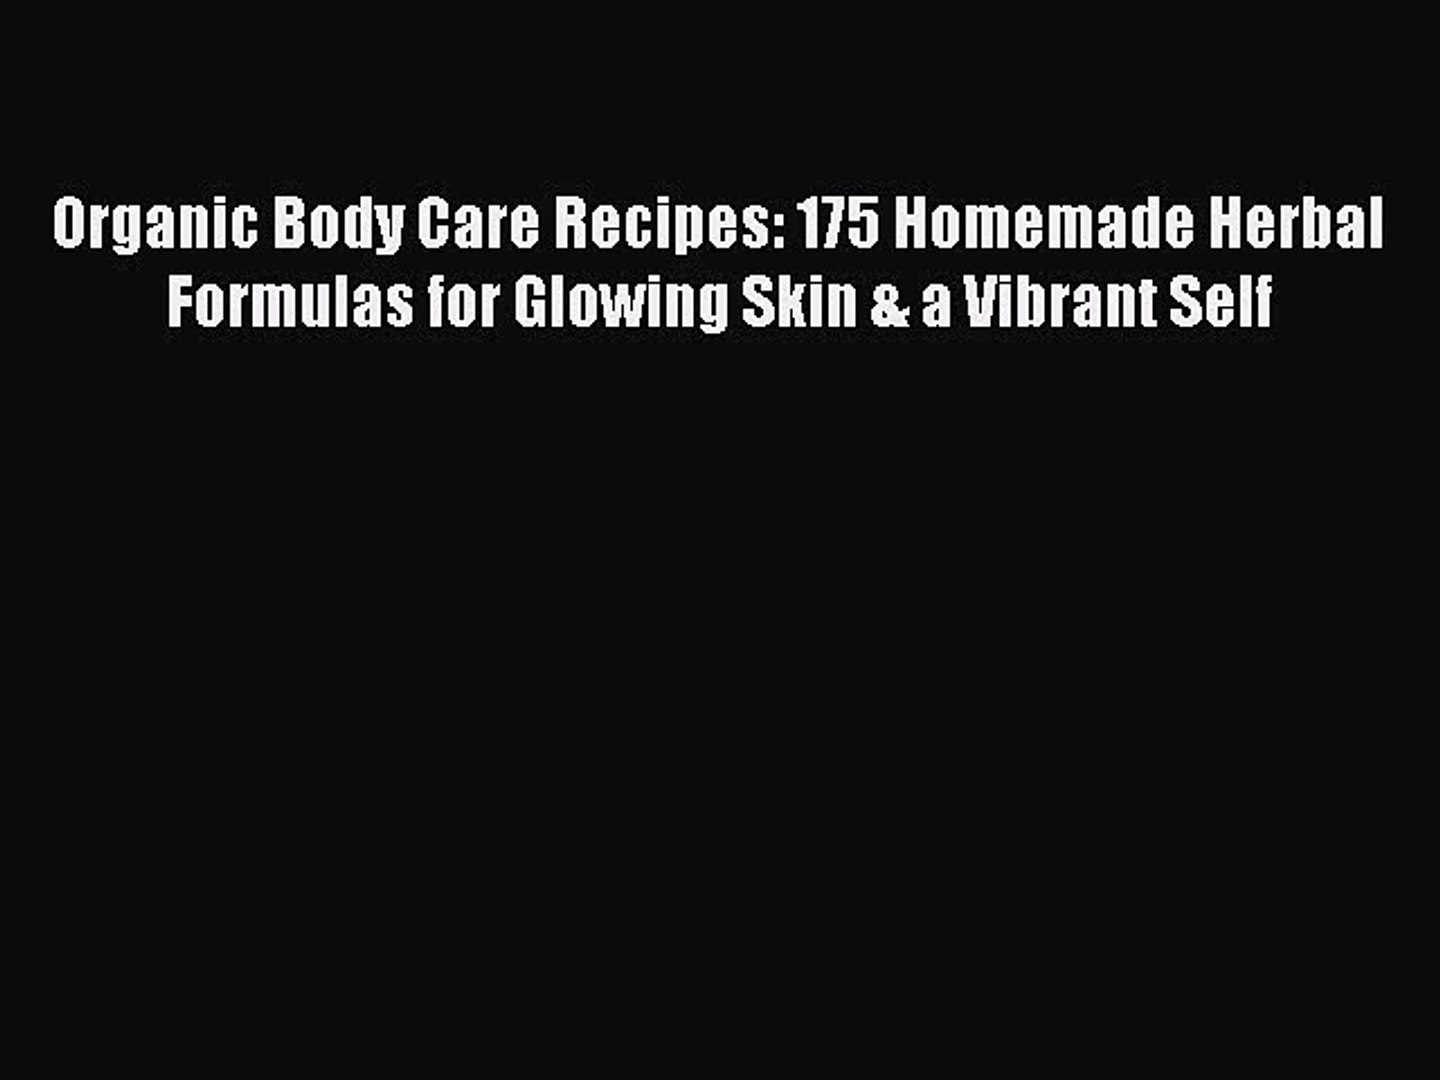 Read Organic Body Care Recipes: 175 Homemade Herbal Formulas for Glowing Skin & a Vibrant Self